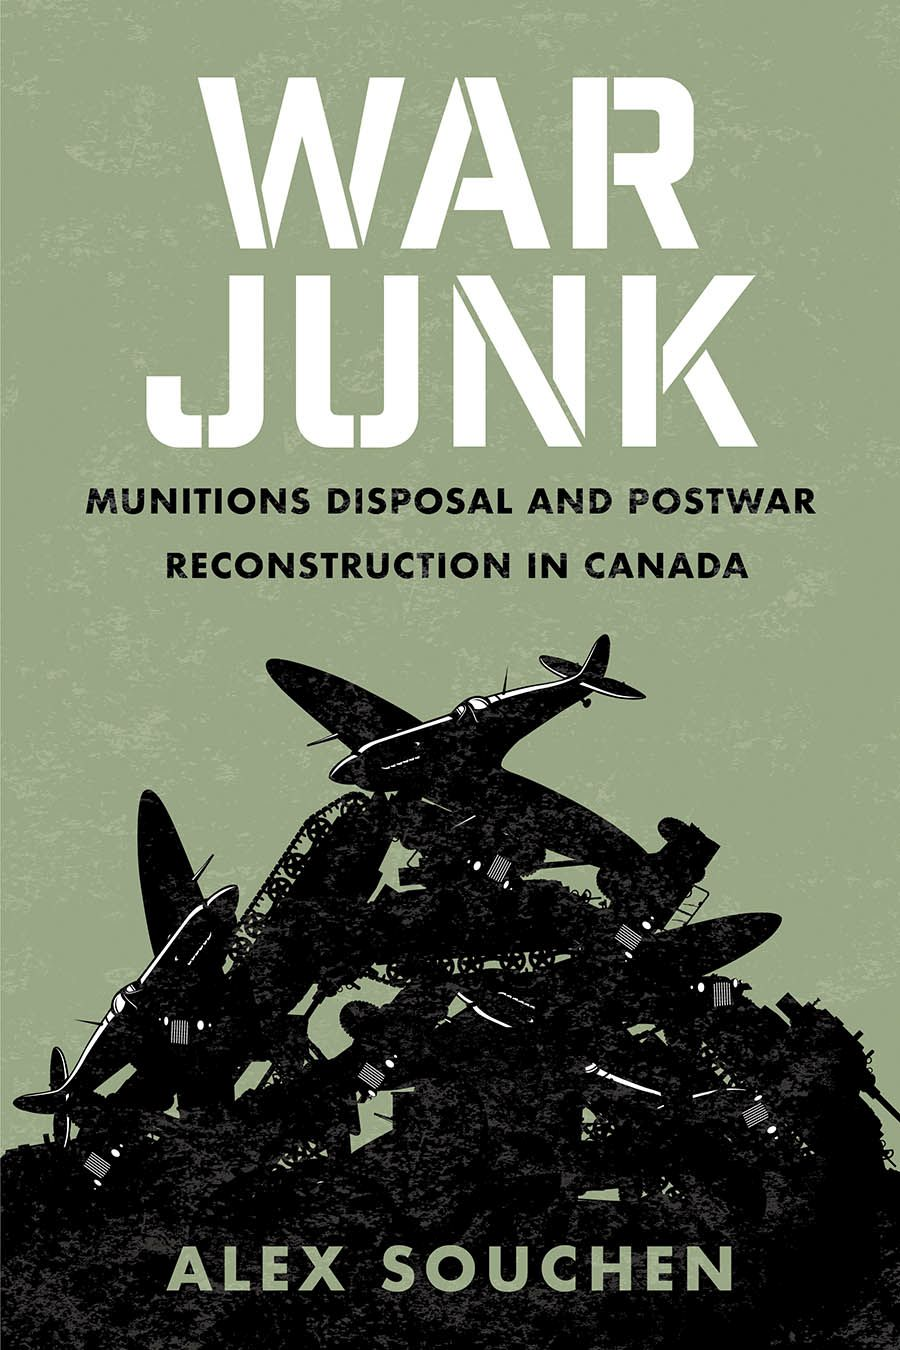 War Junk: Munitions Disposal and Postwar Reconstruction in Canada